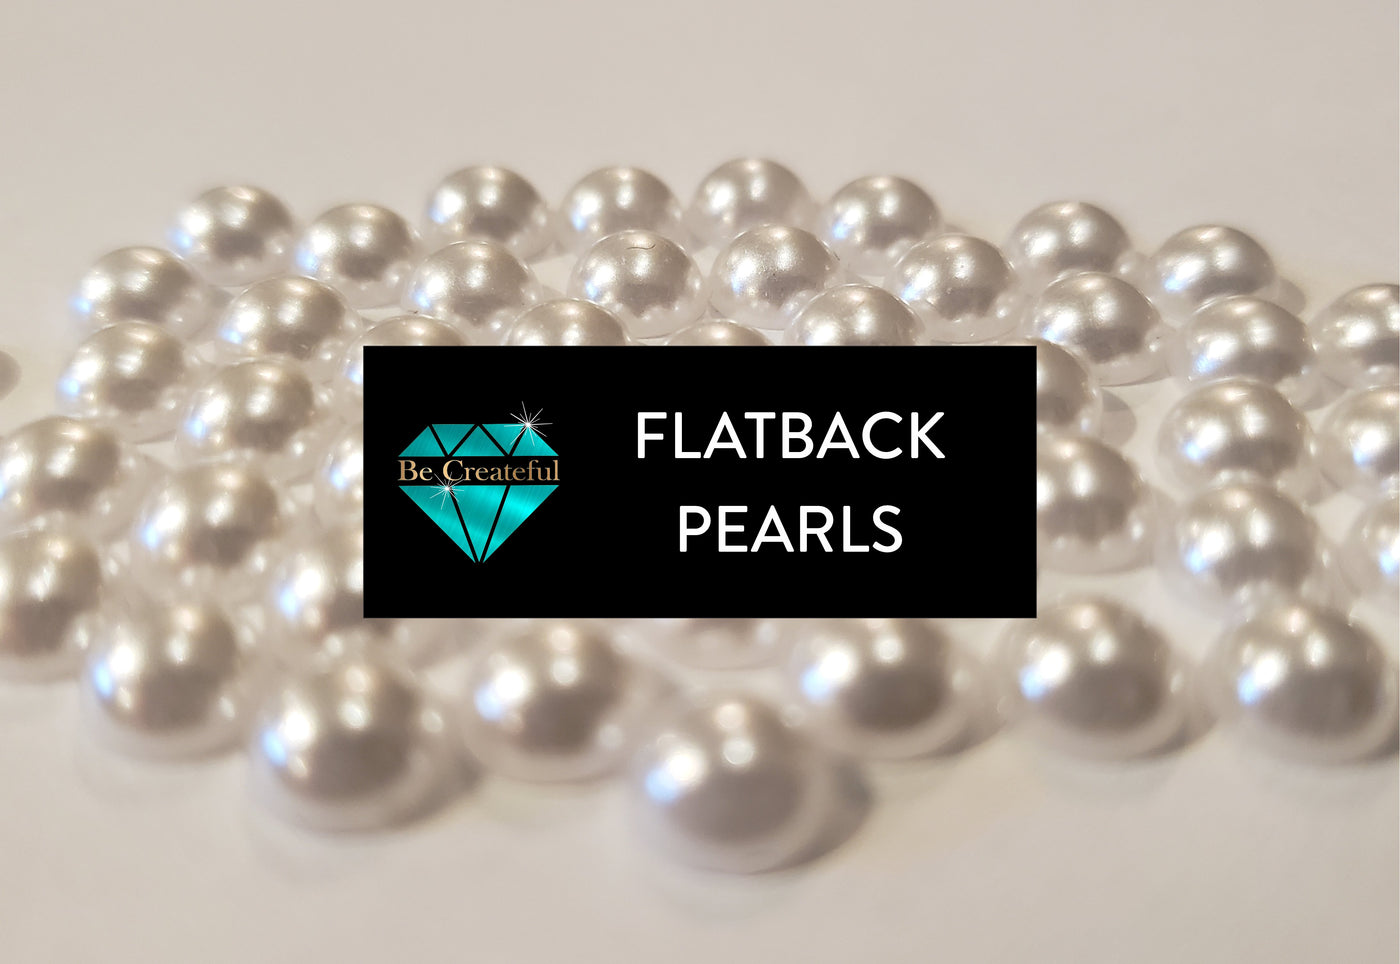 Be Createful Flatback Pearls